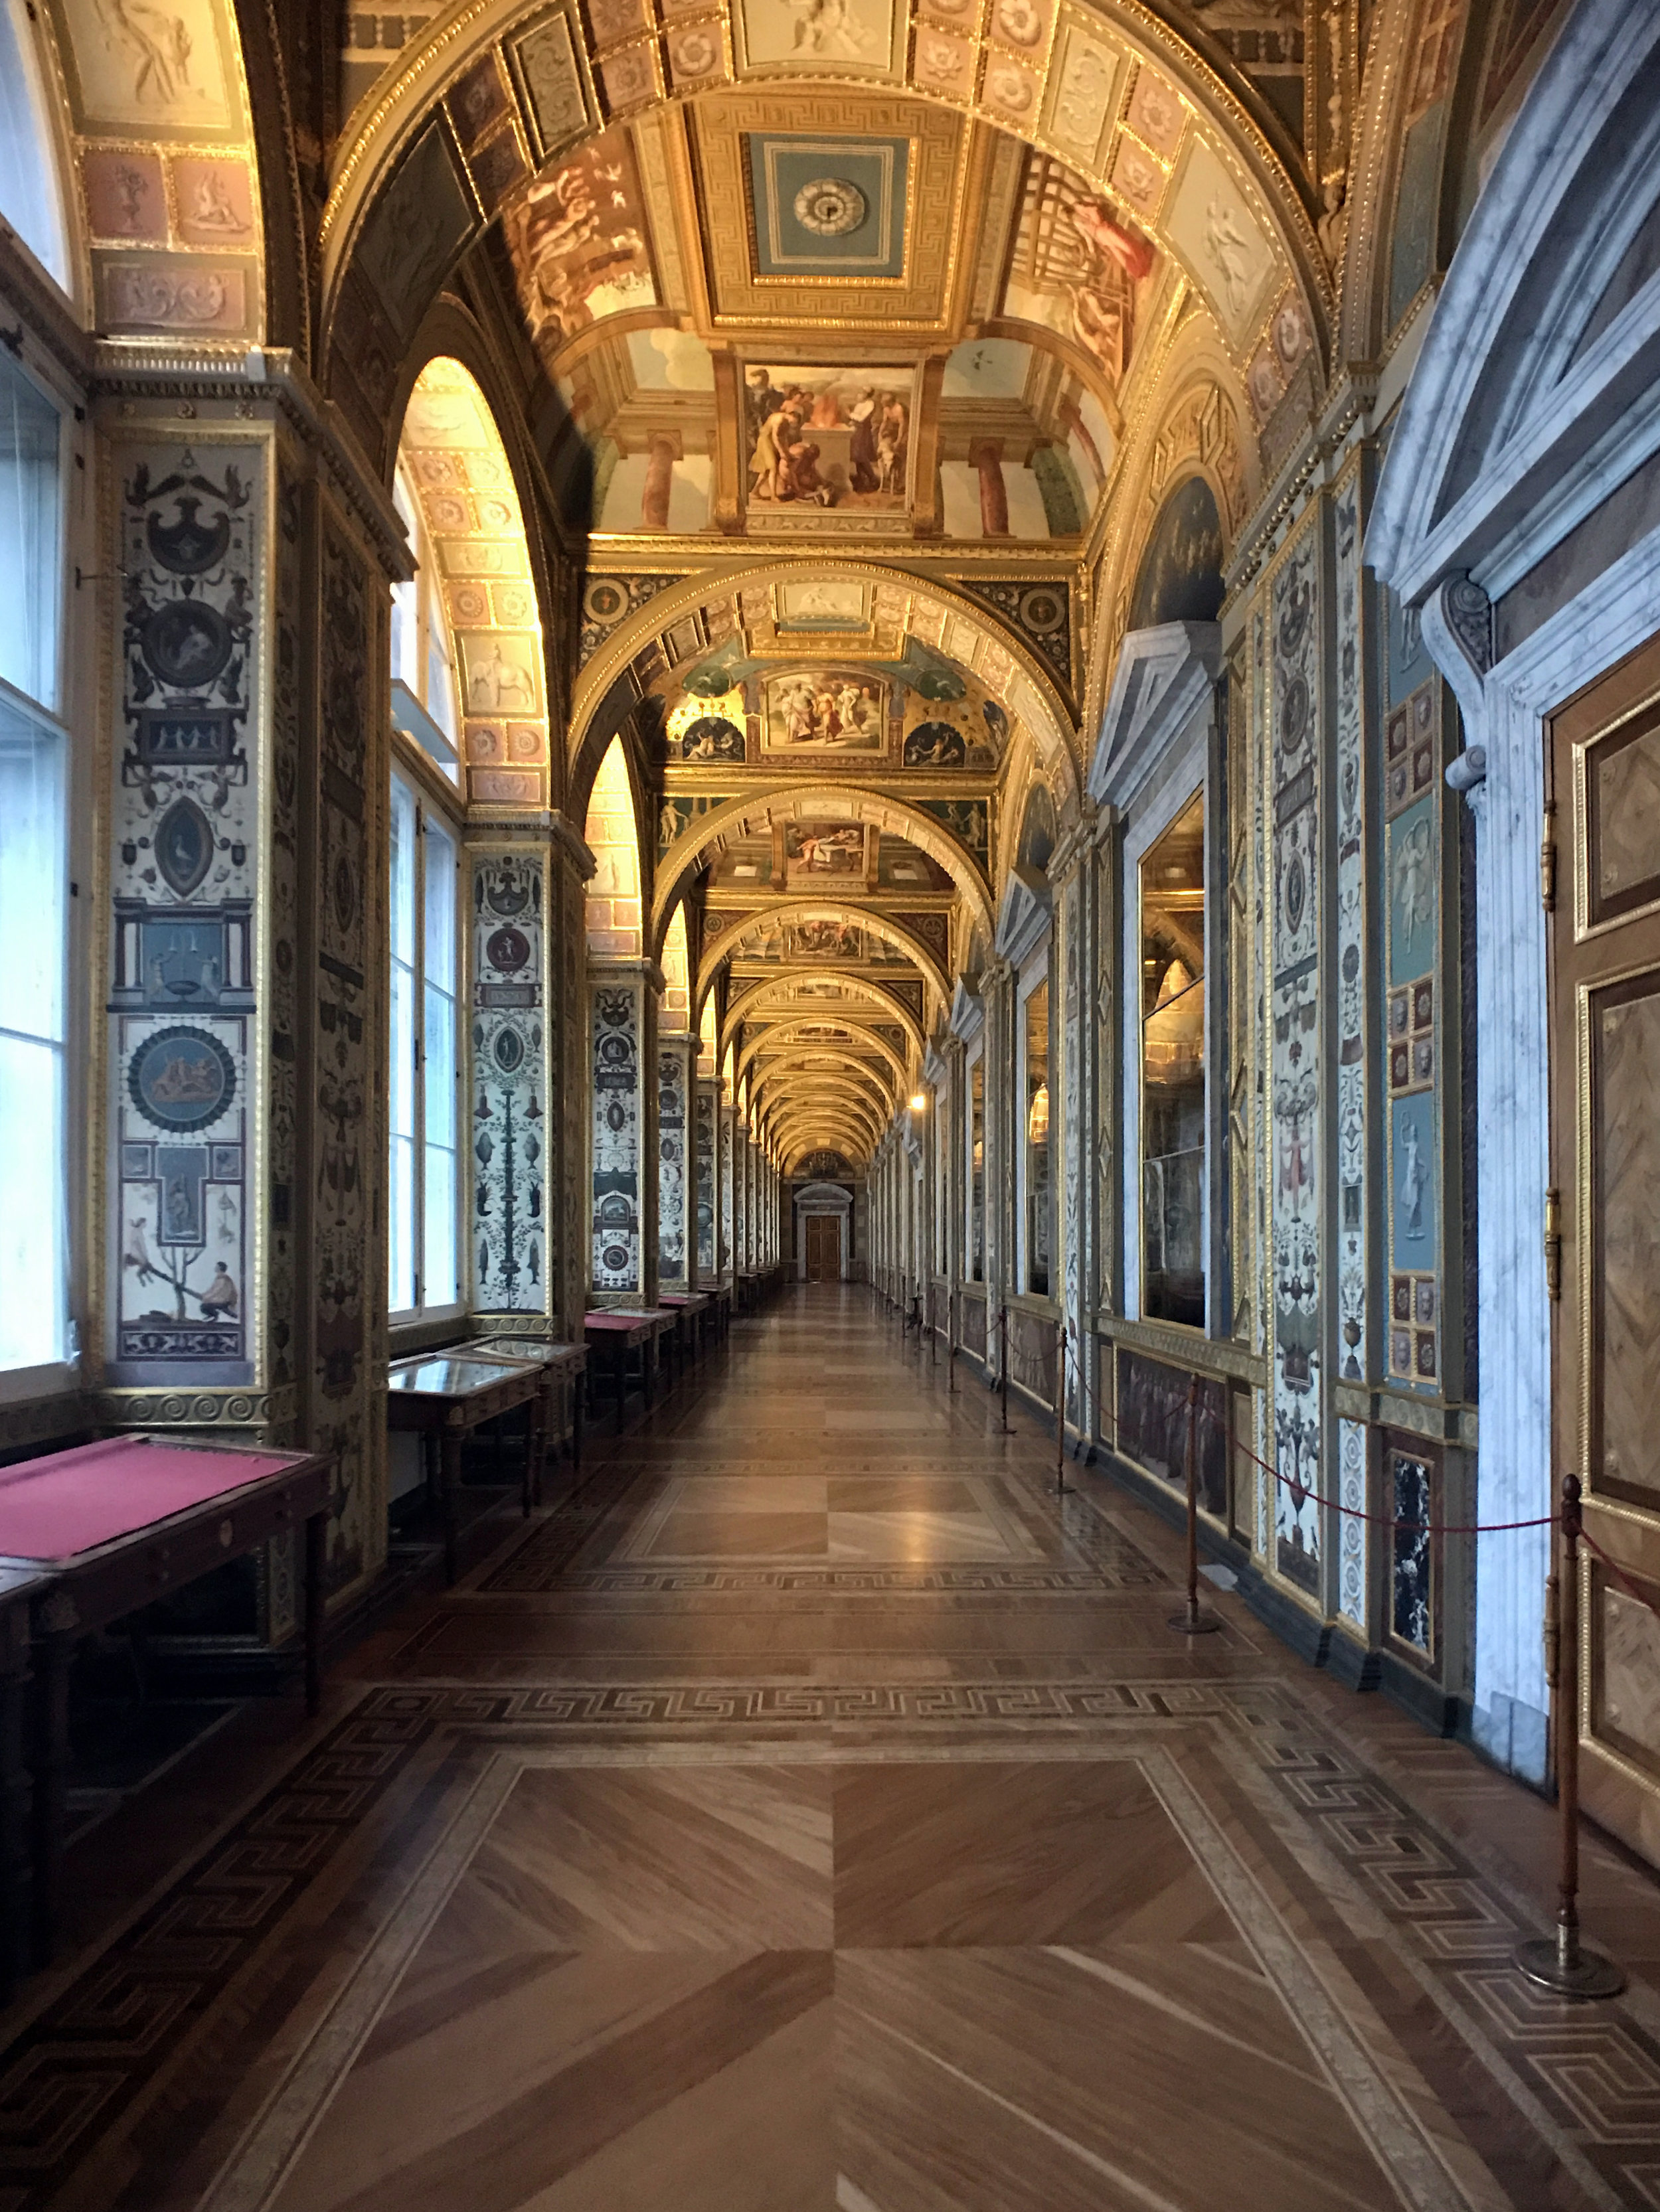 Commissioned by Catherine the Great in the late 1780s, the Raphael Loggias are copies of the Gallery in the Papal Palace in Vatican City.